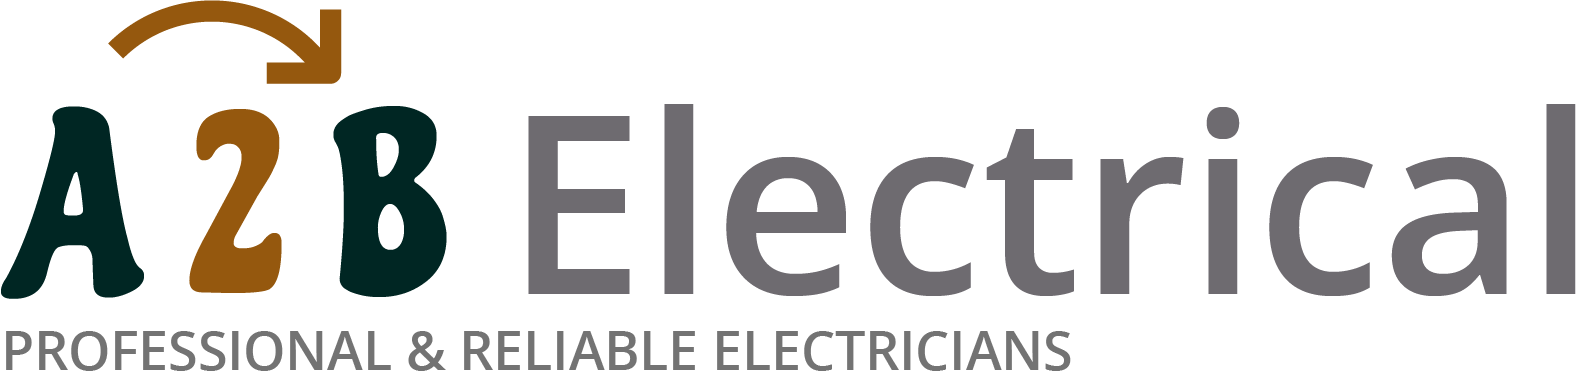 If you have electrical wiring problems in Bolton, we can provide an electrician to have a look for you.